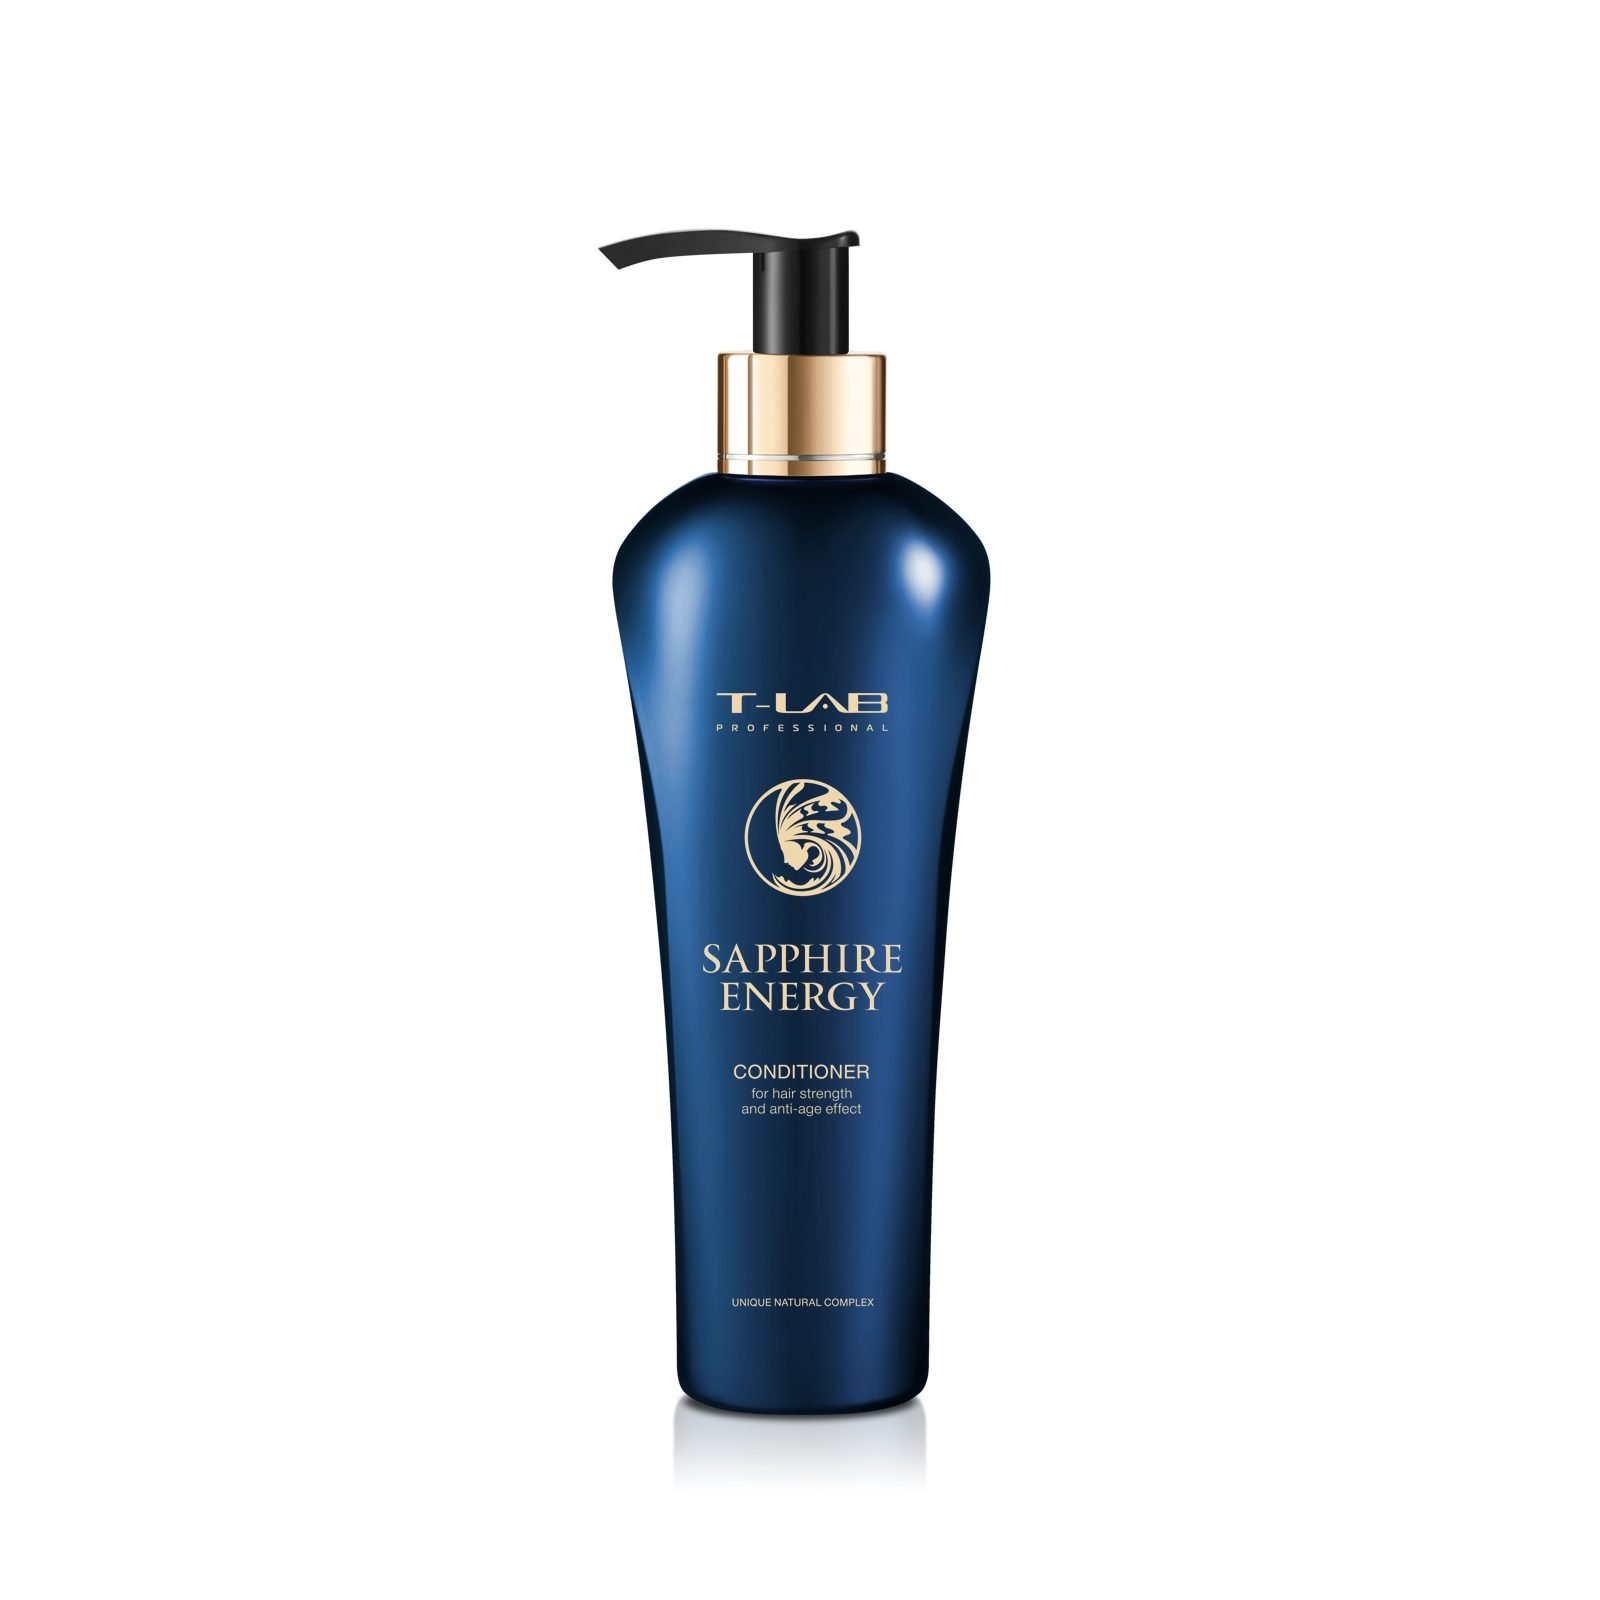 SAPPHIRE ENERGY CONDITIONER 250 ml